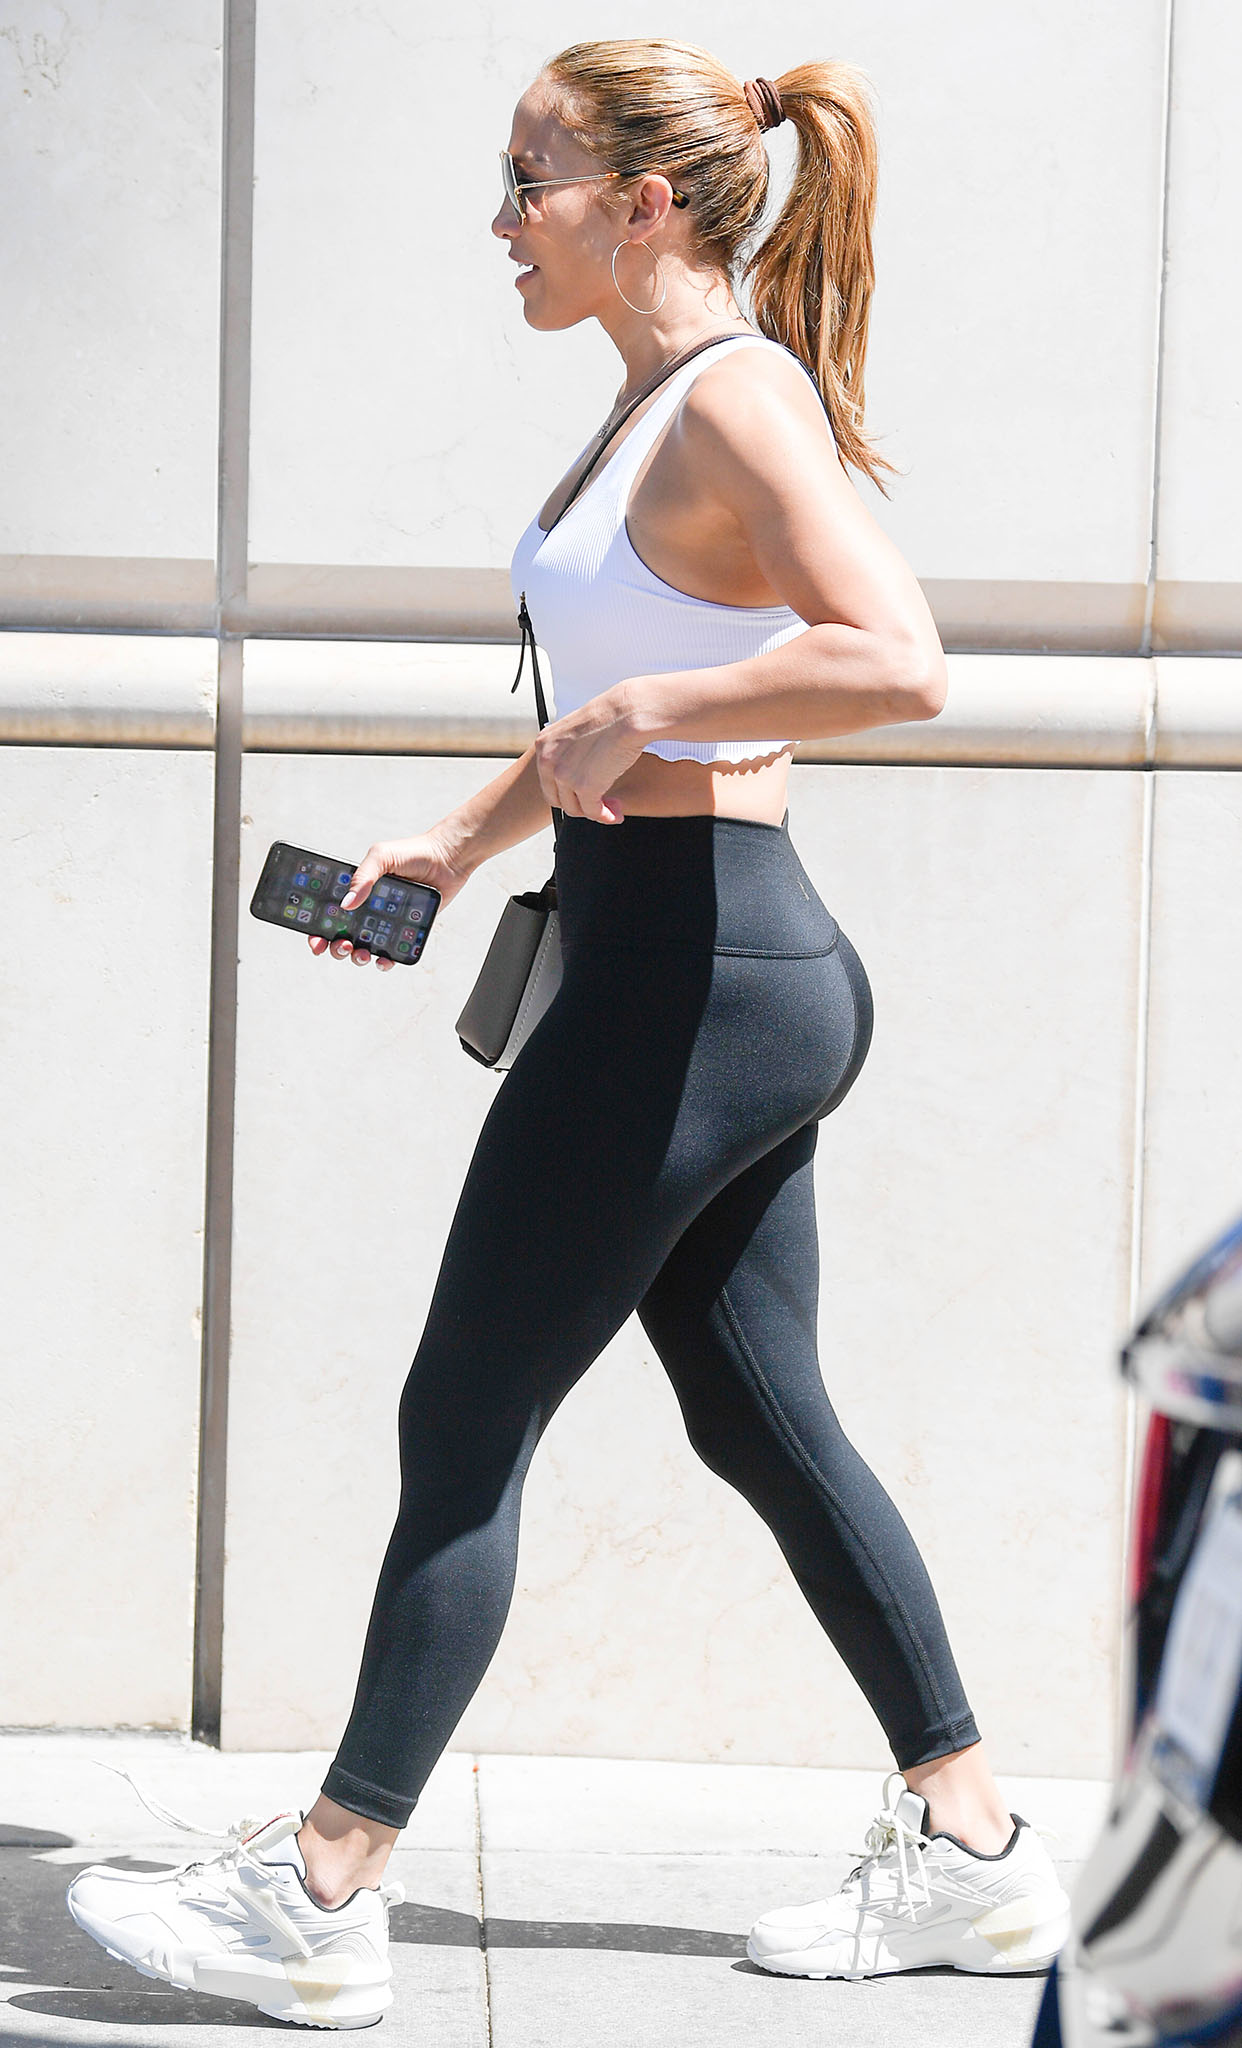 Jennifer Lopez pairs a white cropped tank top with Style Reform high-waisted black leggings